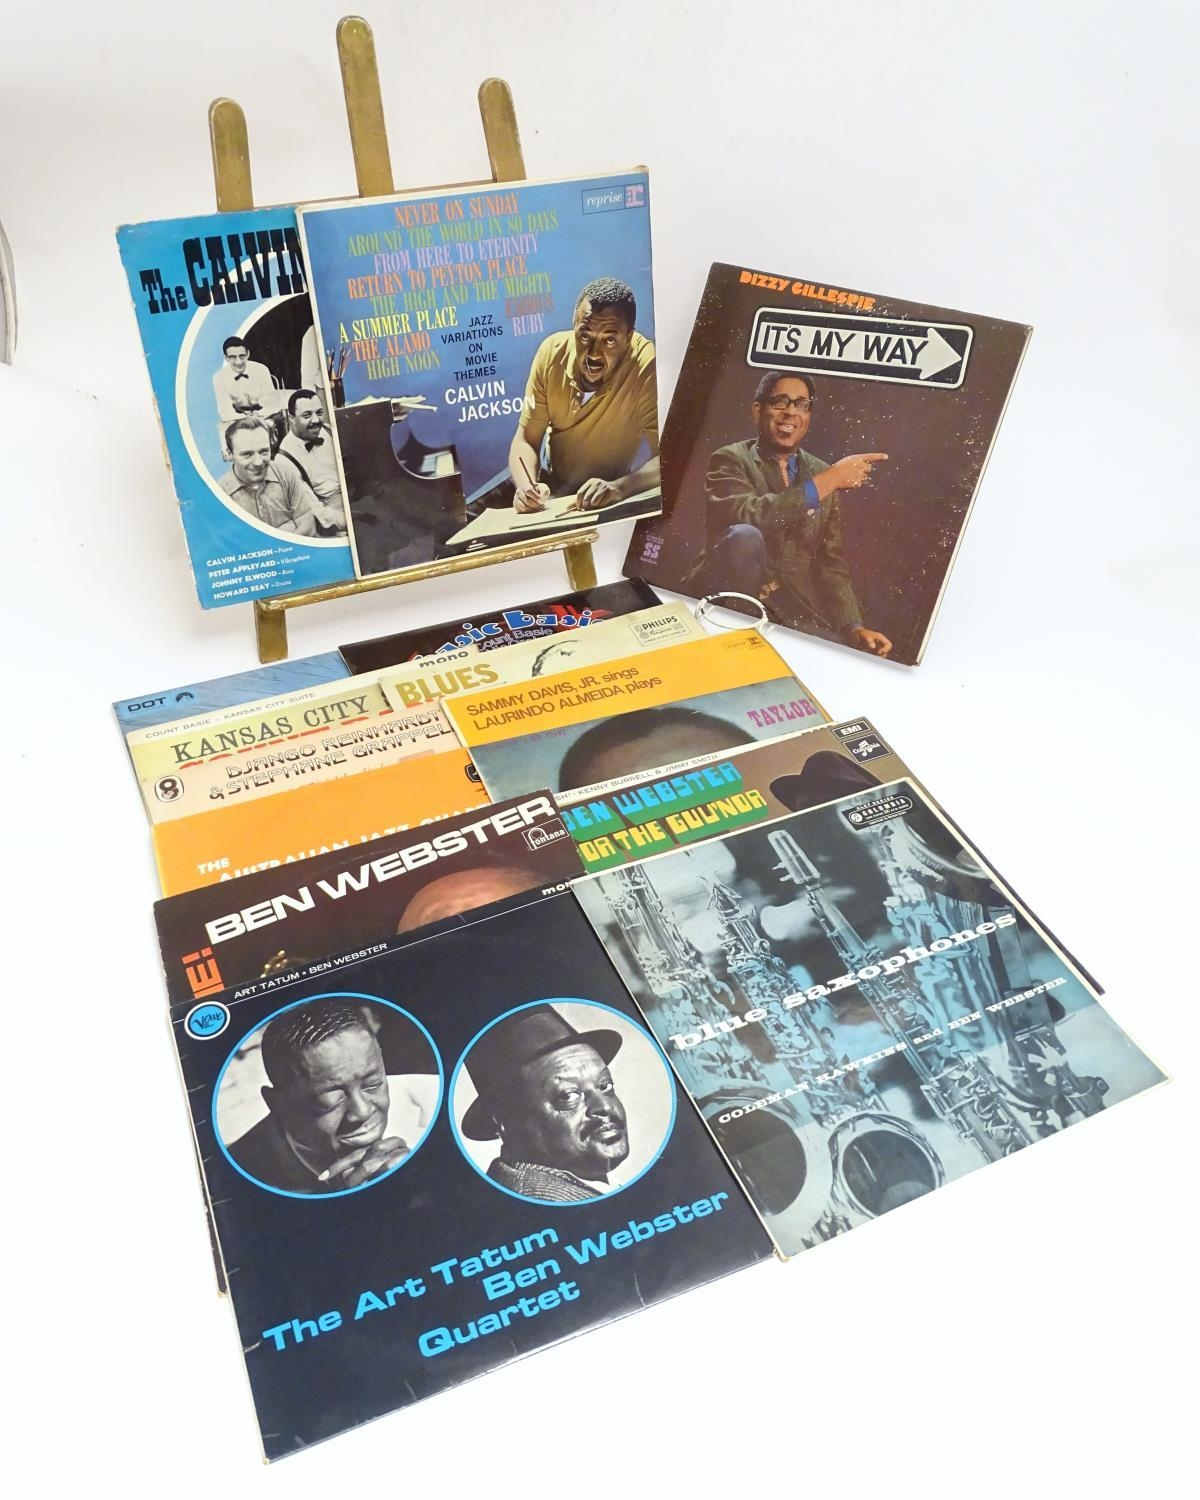 A collection of 20thC 33 rpm Vinyl records / LPs, - Jazz, comprising: The Eddie Condon Floor Show 2, - Image 7 of 19